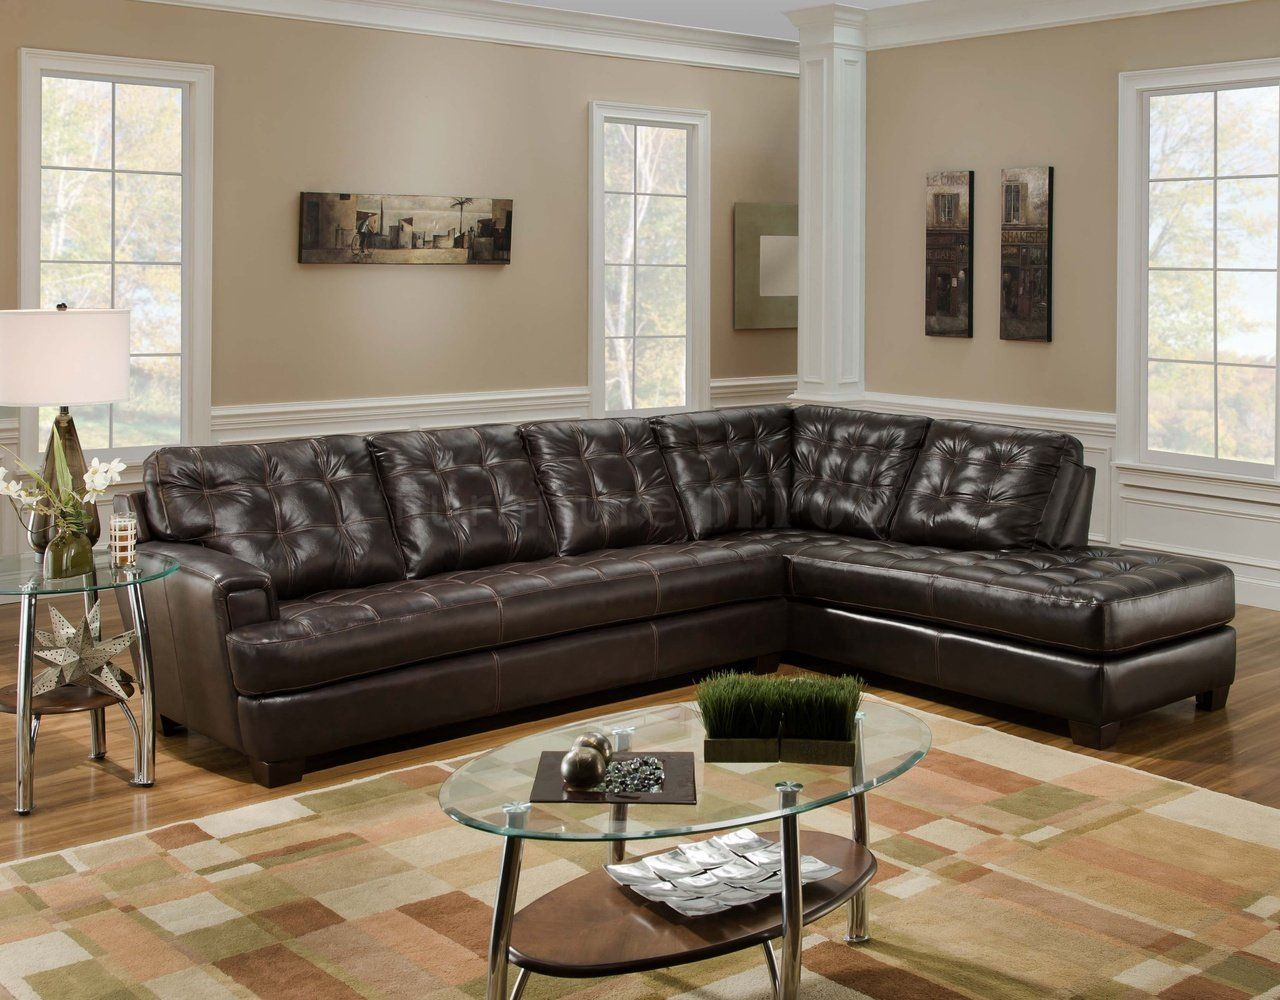 L Shape Brown Leather Couch Chicory Brown Tufted Top Grain Leather Modern Sectional Sof Modern Sofa Sectional Modern Leather Sectional Sofas Sectional Chaise